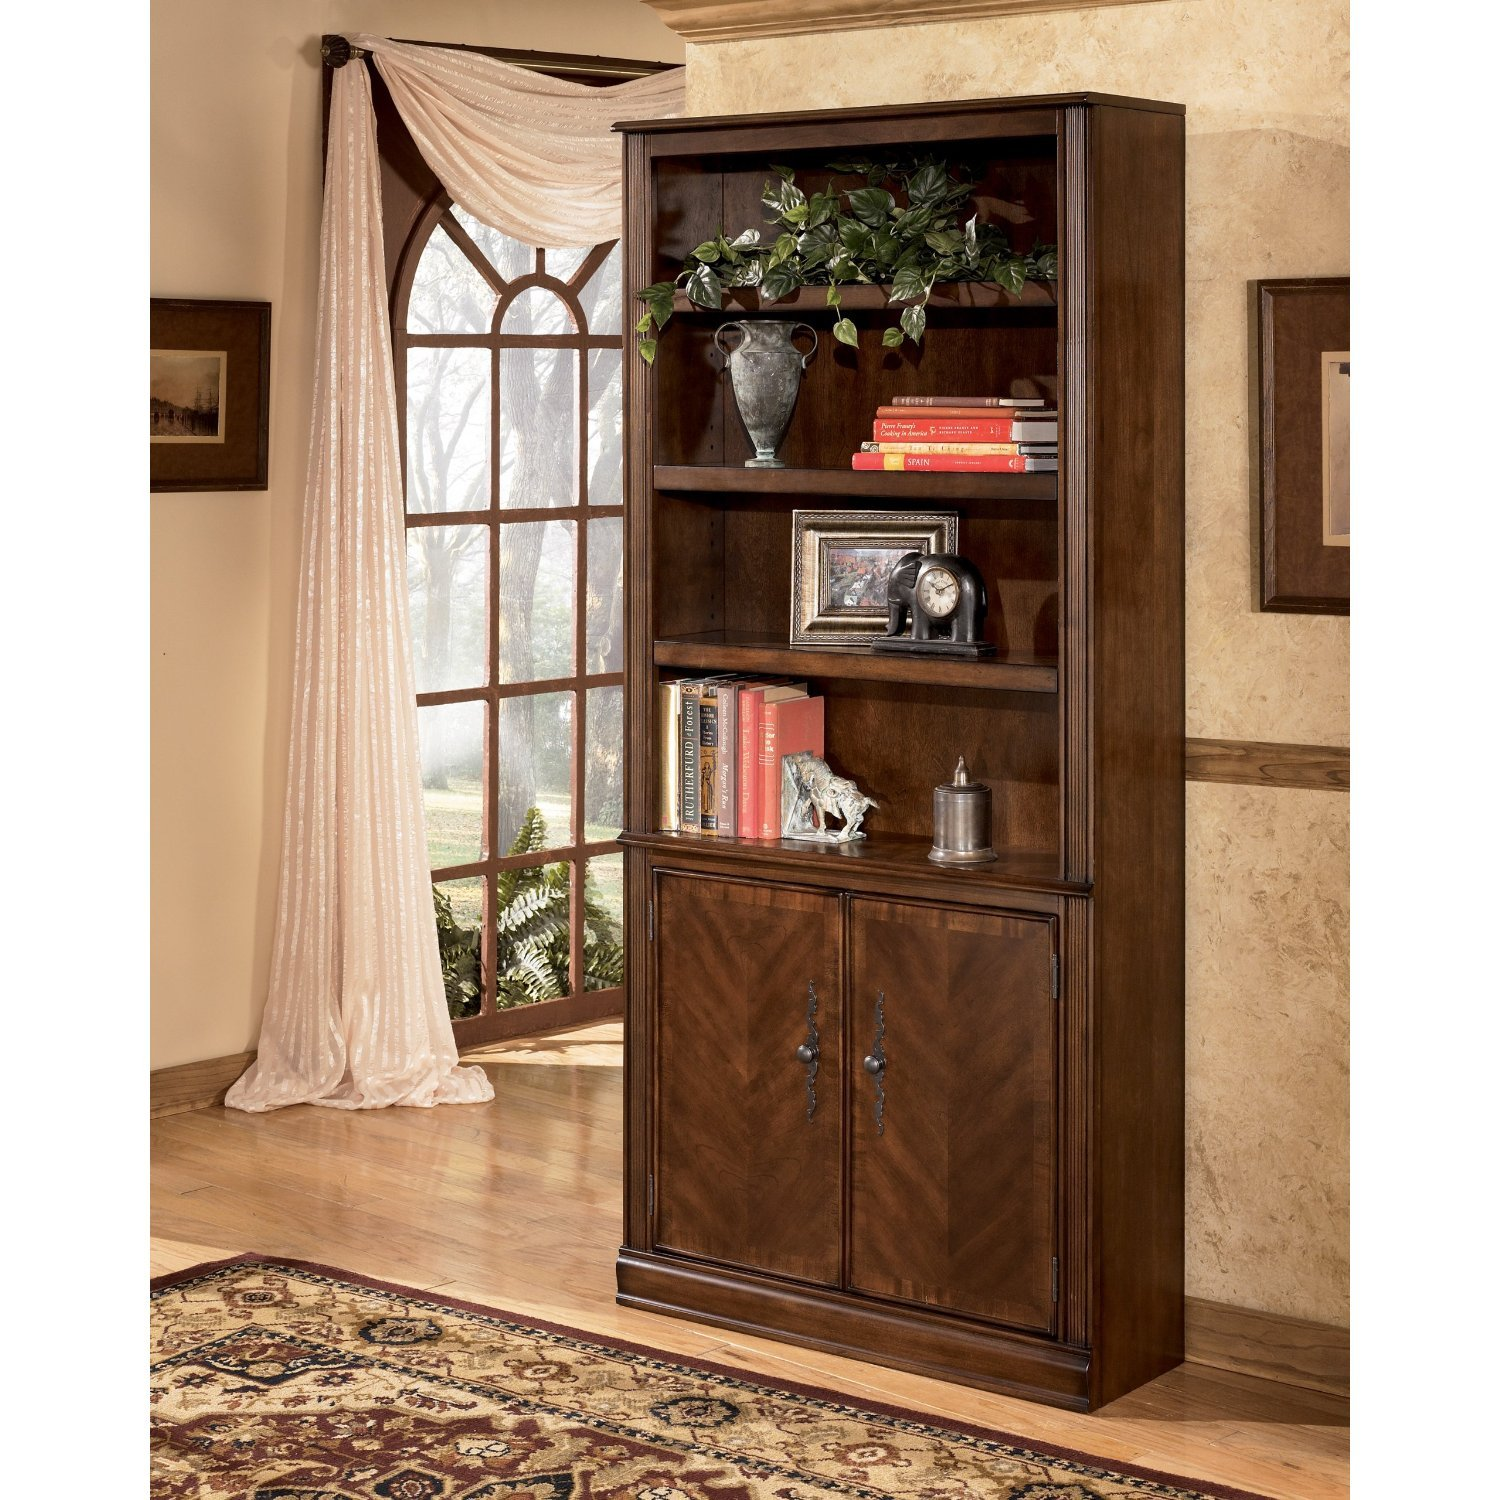 furniture door size secret of hinges home bookcase hidden hardware stupendous full